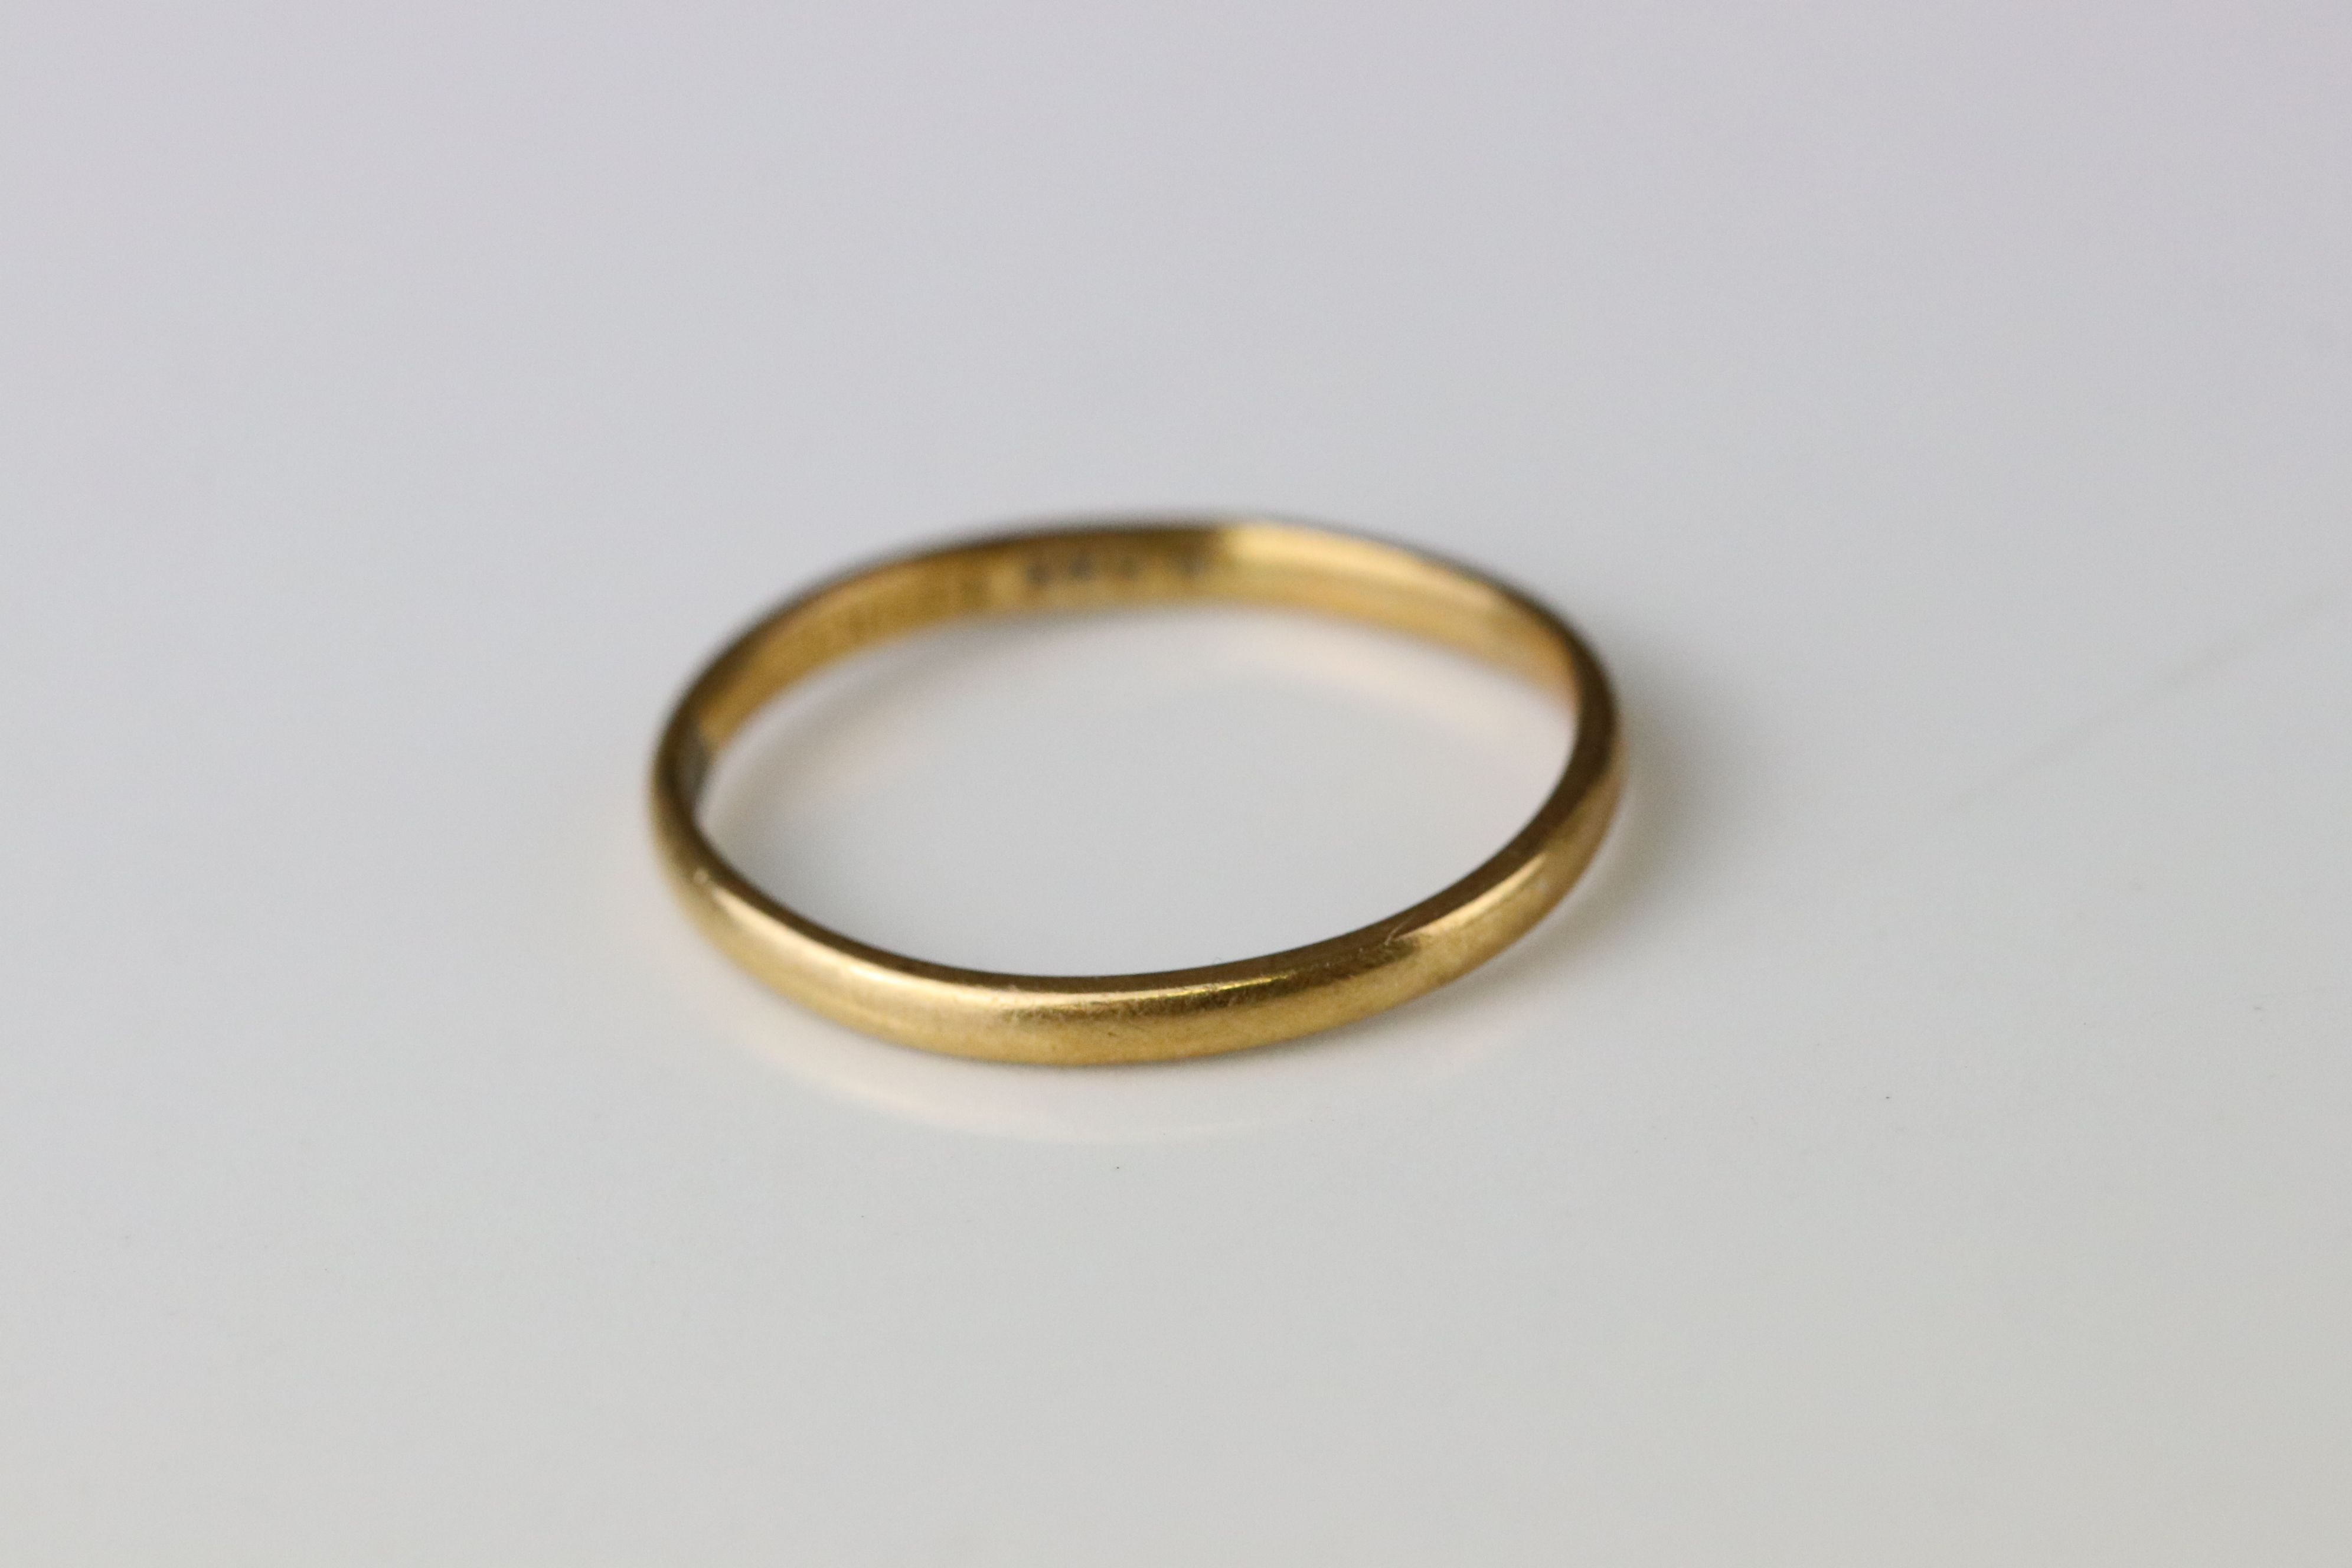 22ct yellow gold wedding band, width approx 1.5mm, ring size L - Image 3 of 3